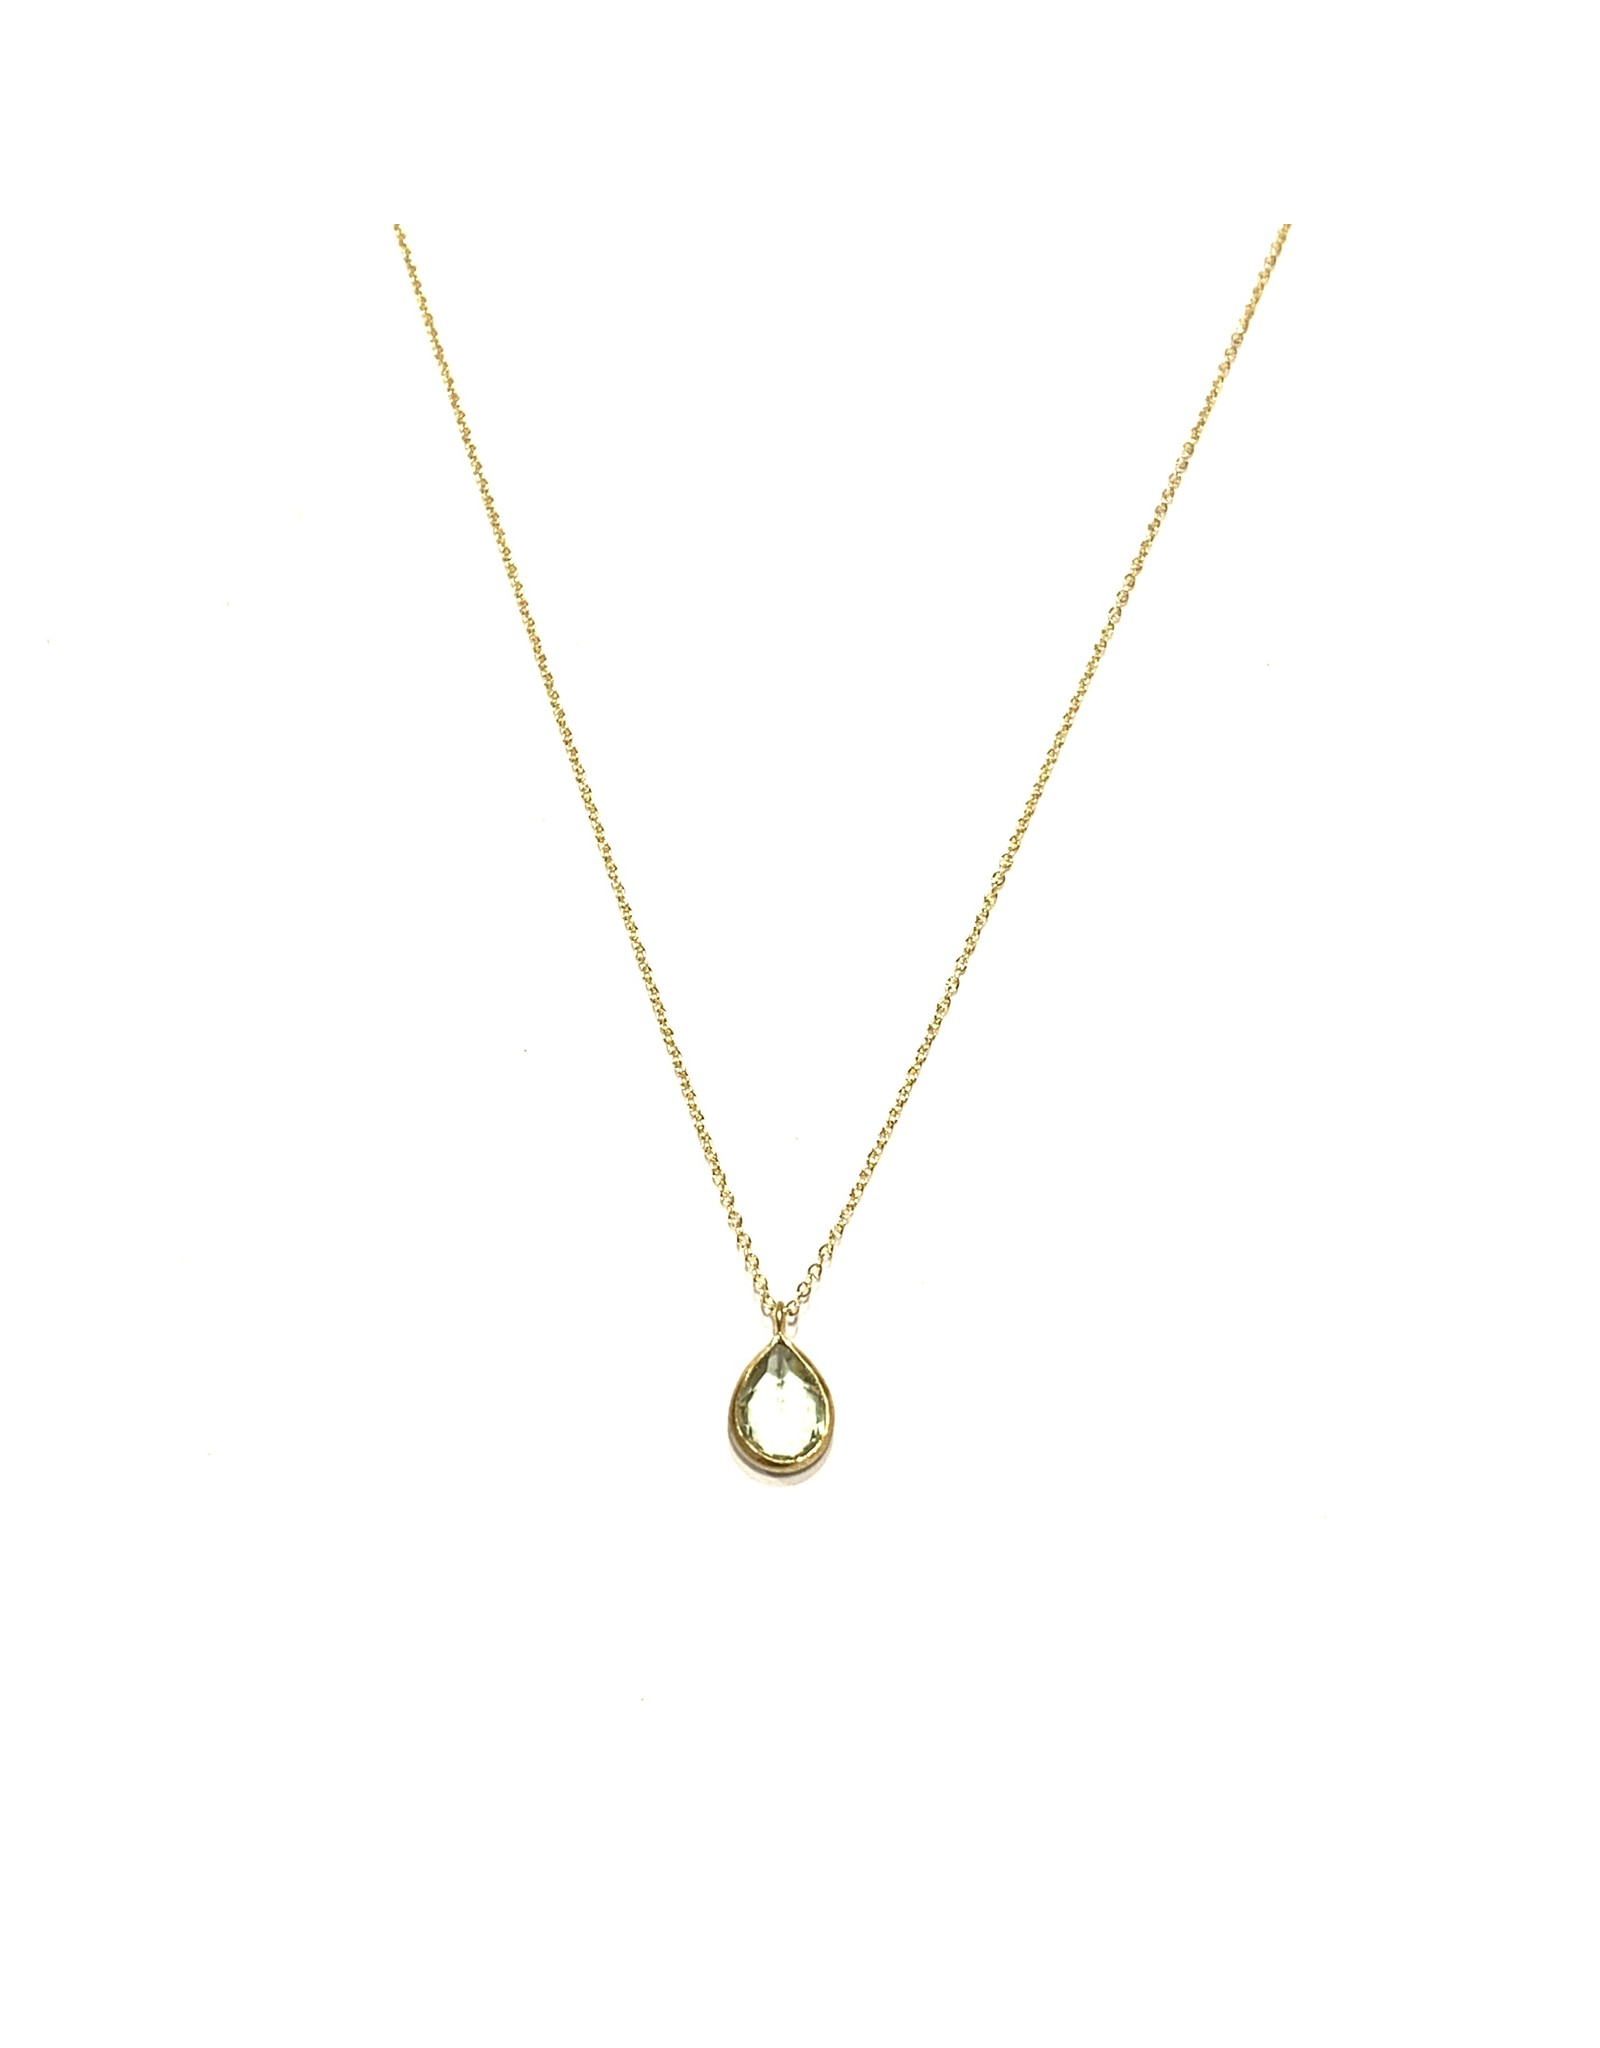 Bo Gold Necklace - Gold - Green Amethyst